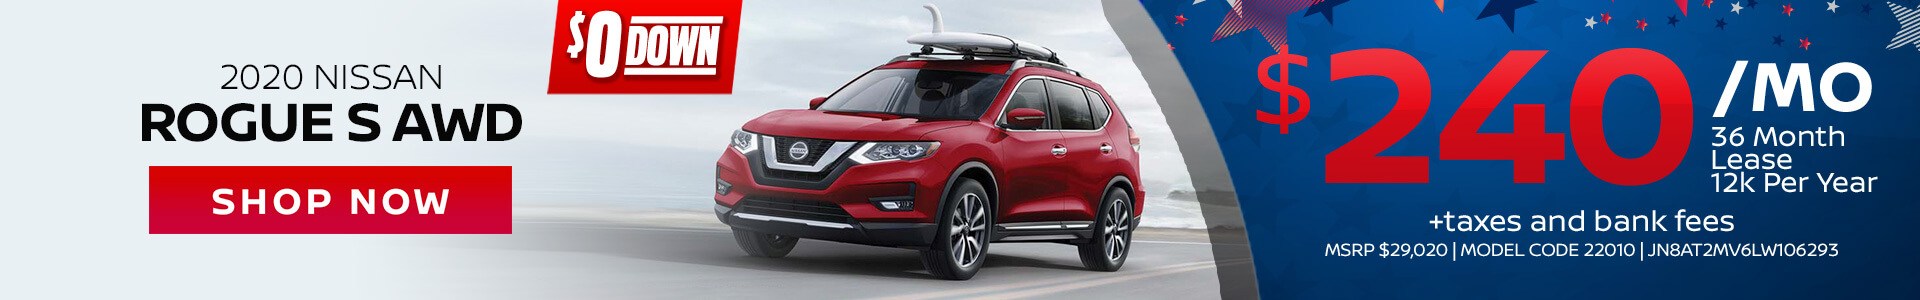 Nissan Rogue $240 Lease